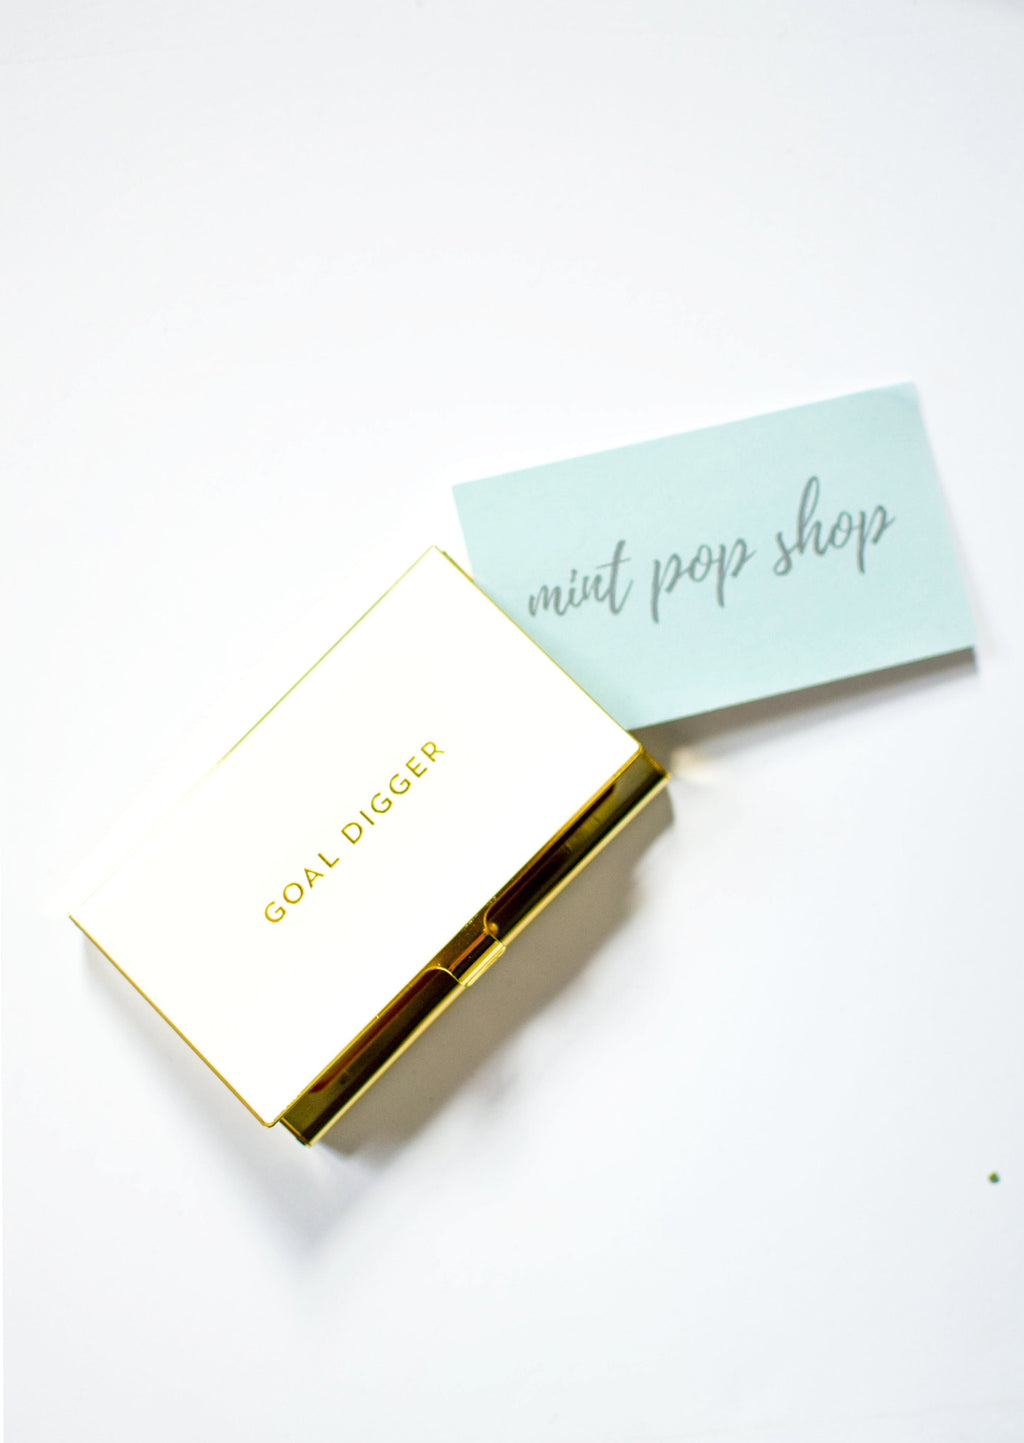 Goal Digger - Business Card Holder - Mint Pop Shop